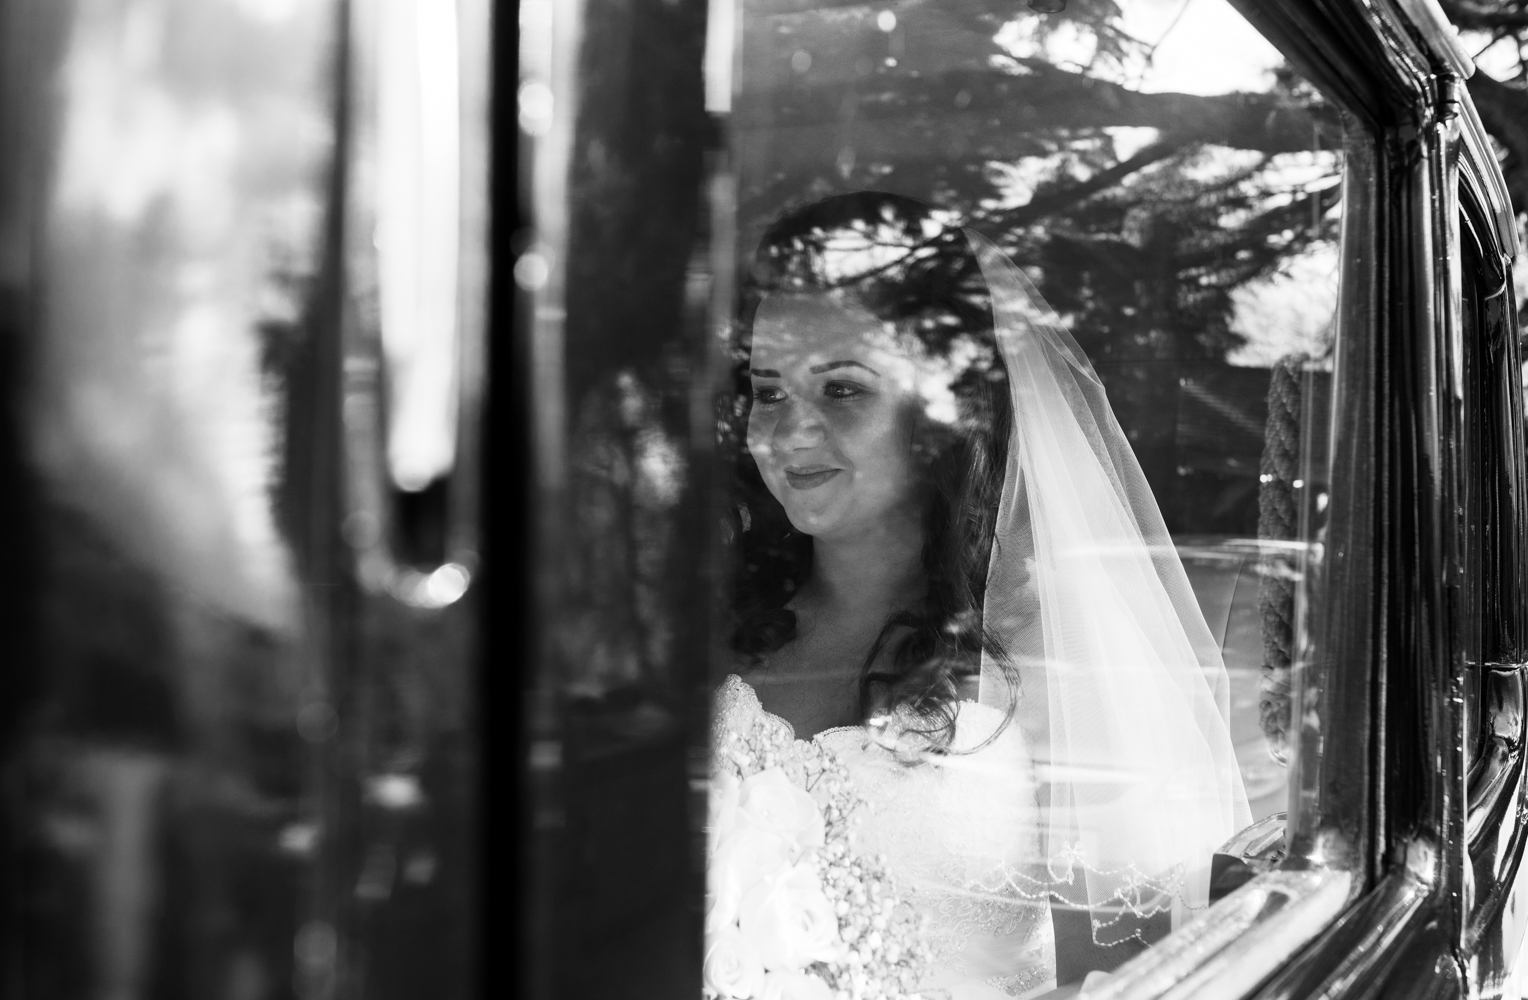 A black and white photograph of the bride sitting in the car prior to her wedding ceremony